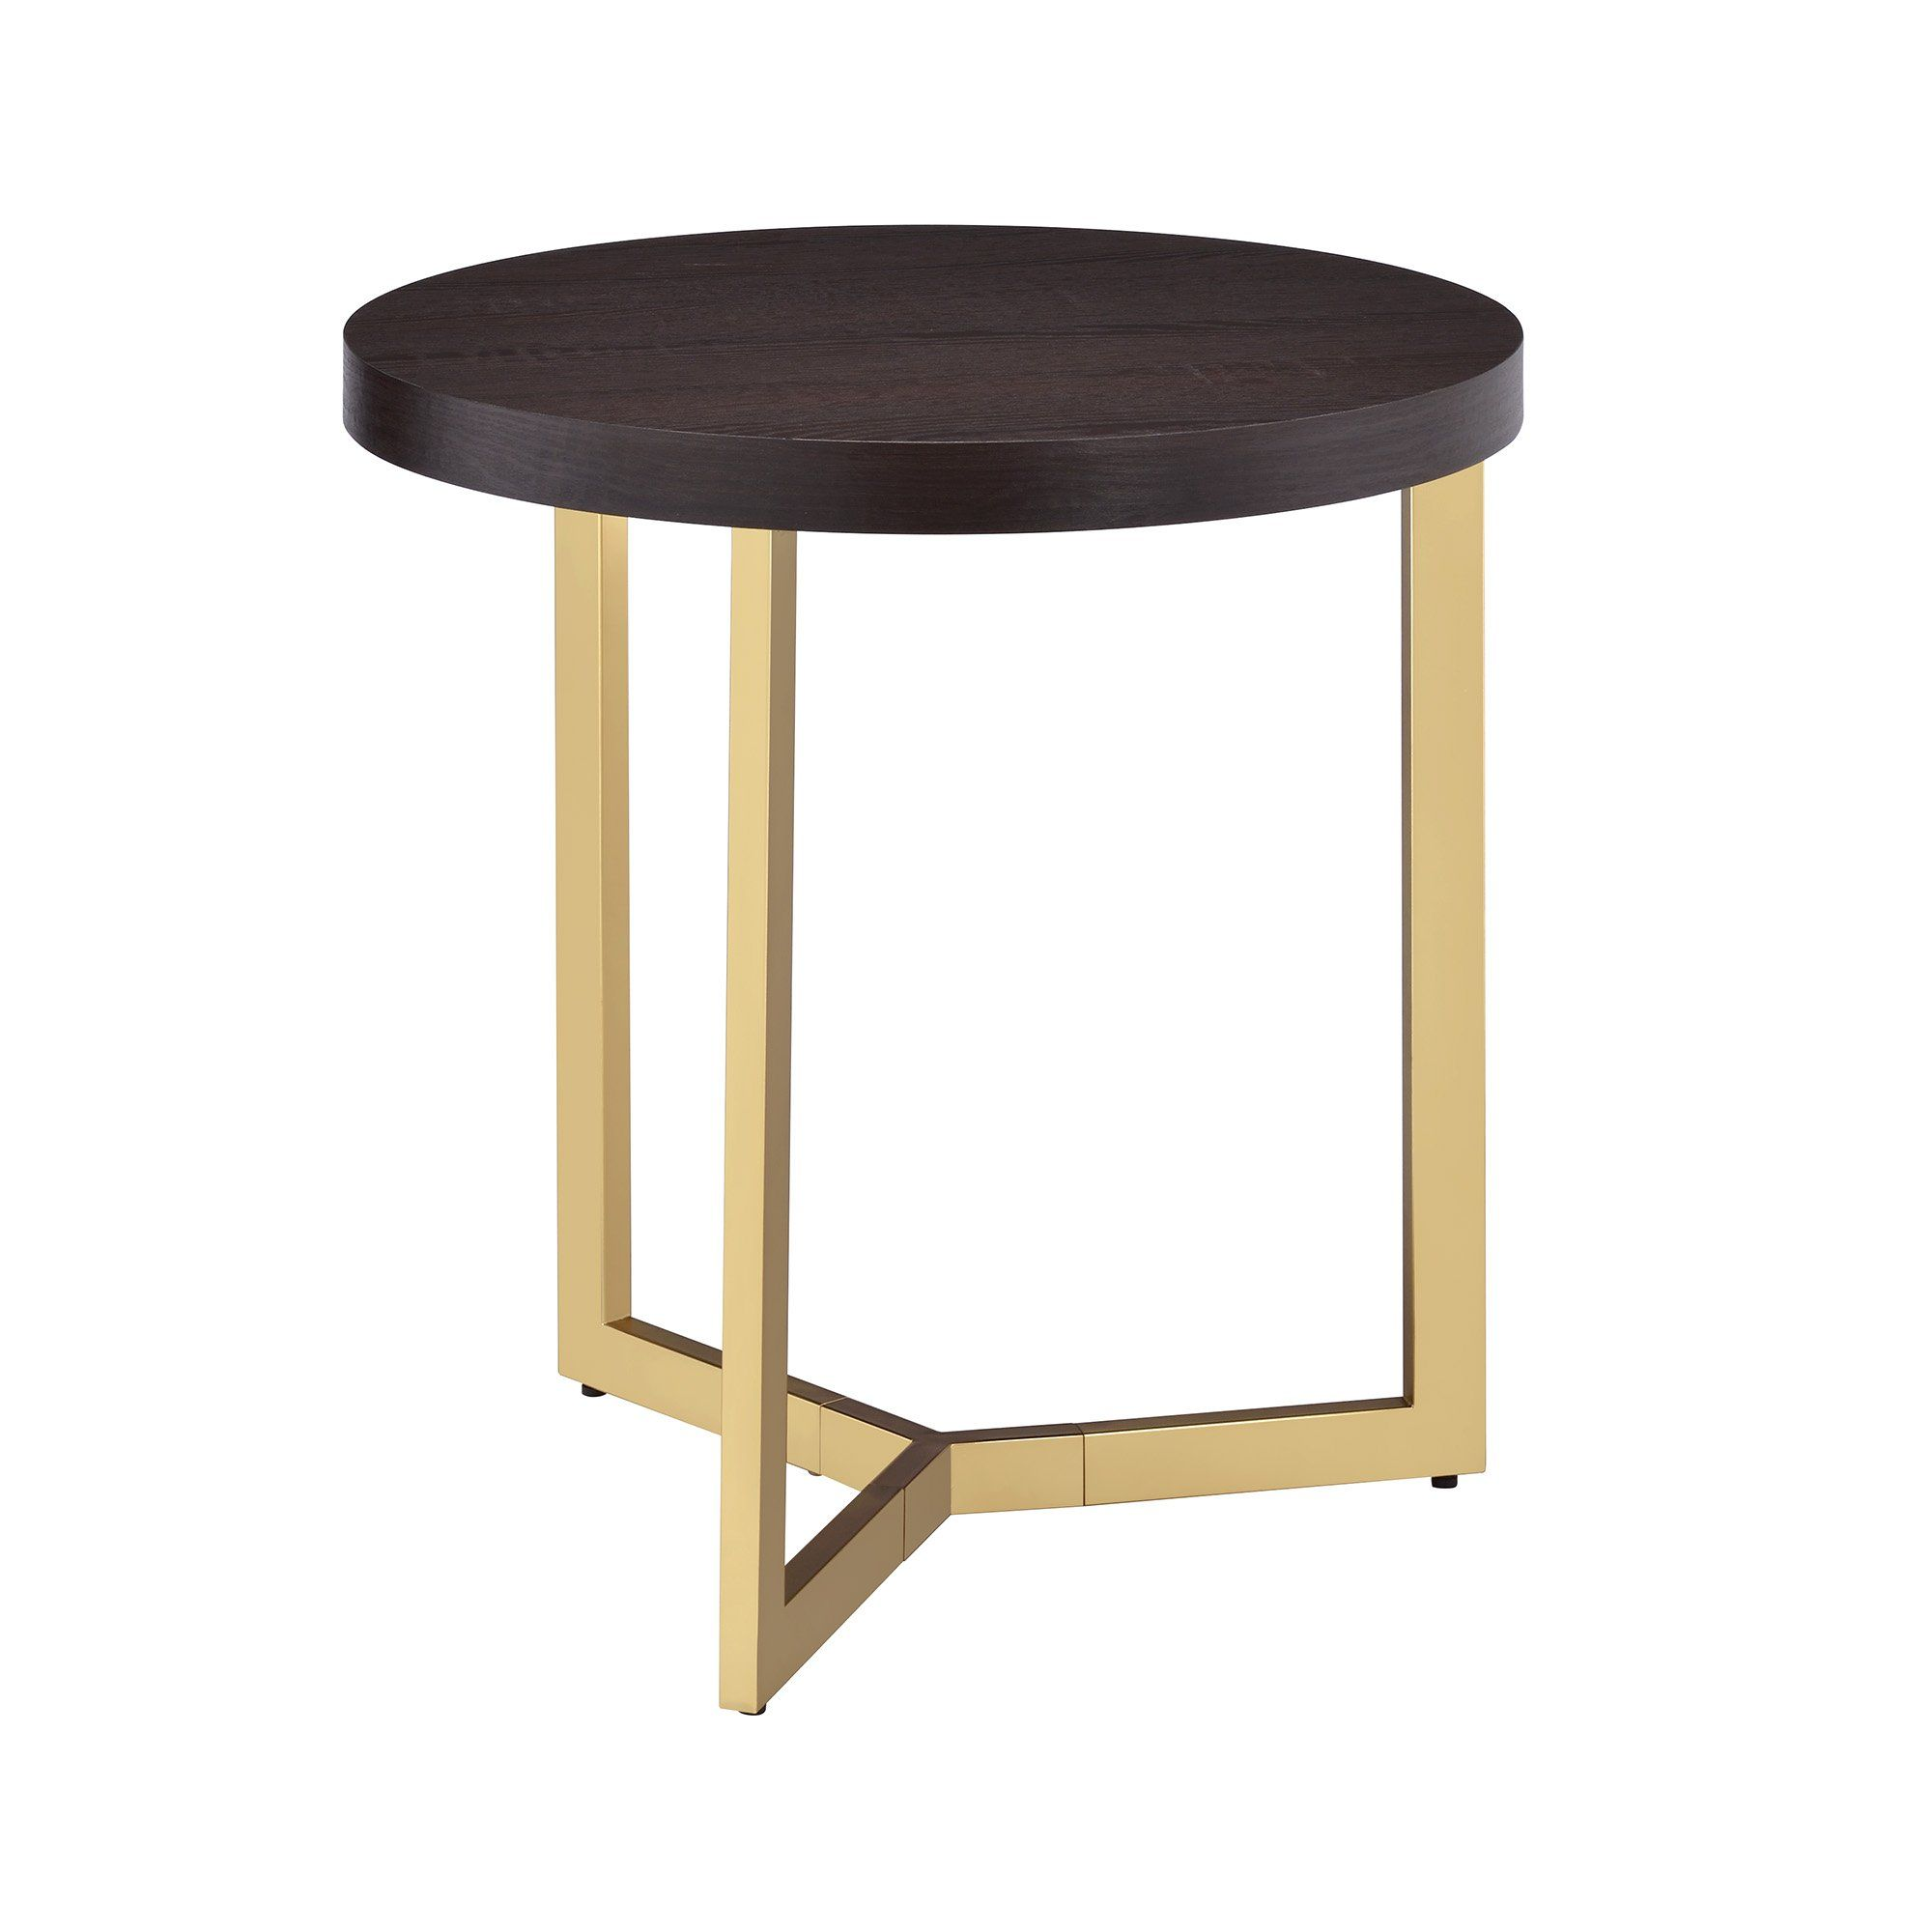 Contemporary Espresso And Brass End Table Harper In 2020 End